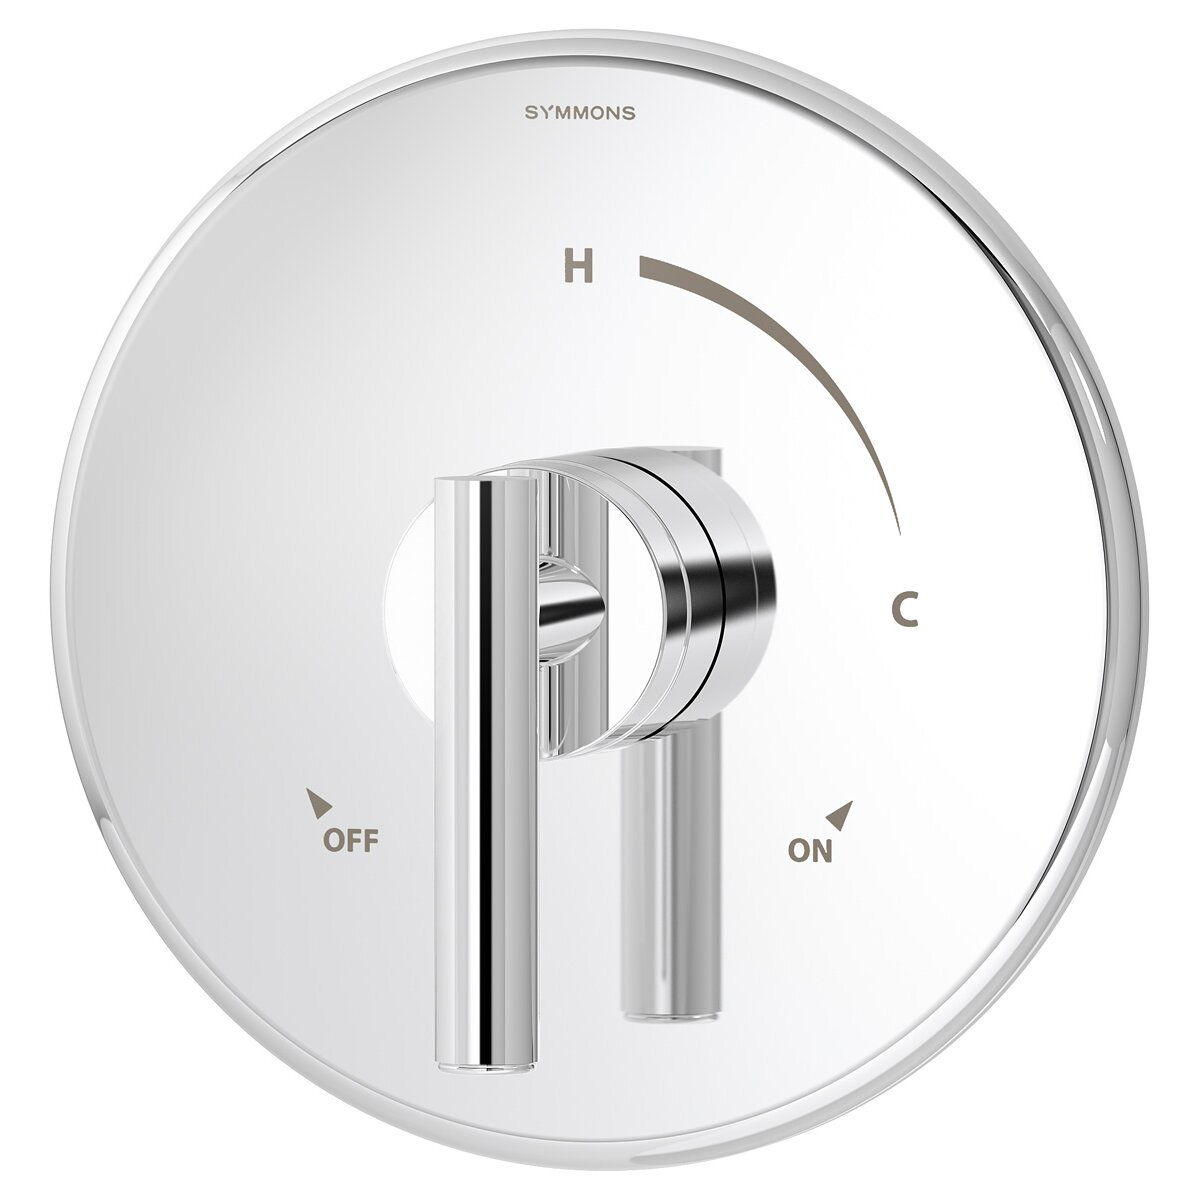 Symmons Dia Shower Valve Trim with Lever Handle & Reviews | Wayfair - Symmons Dia Shower Valve Trim with Lever Handle